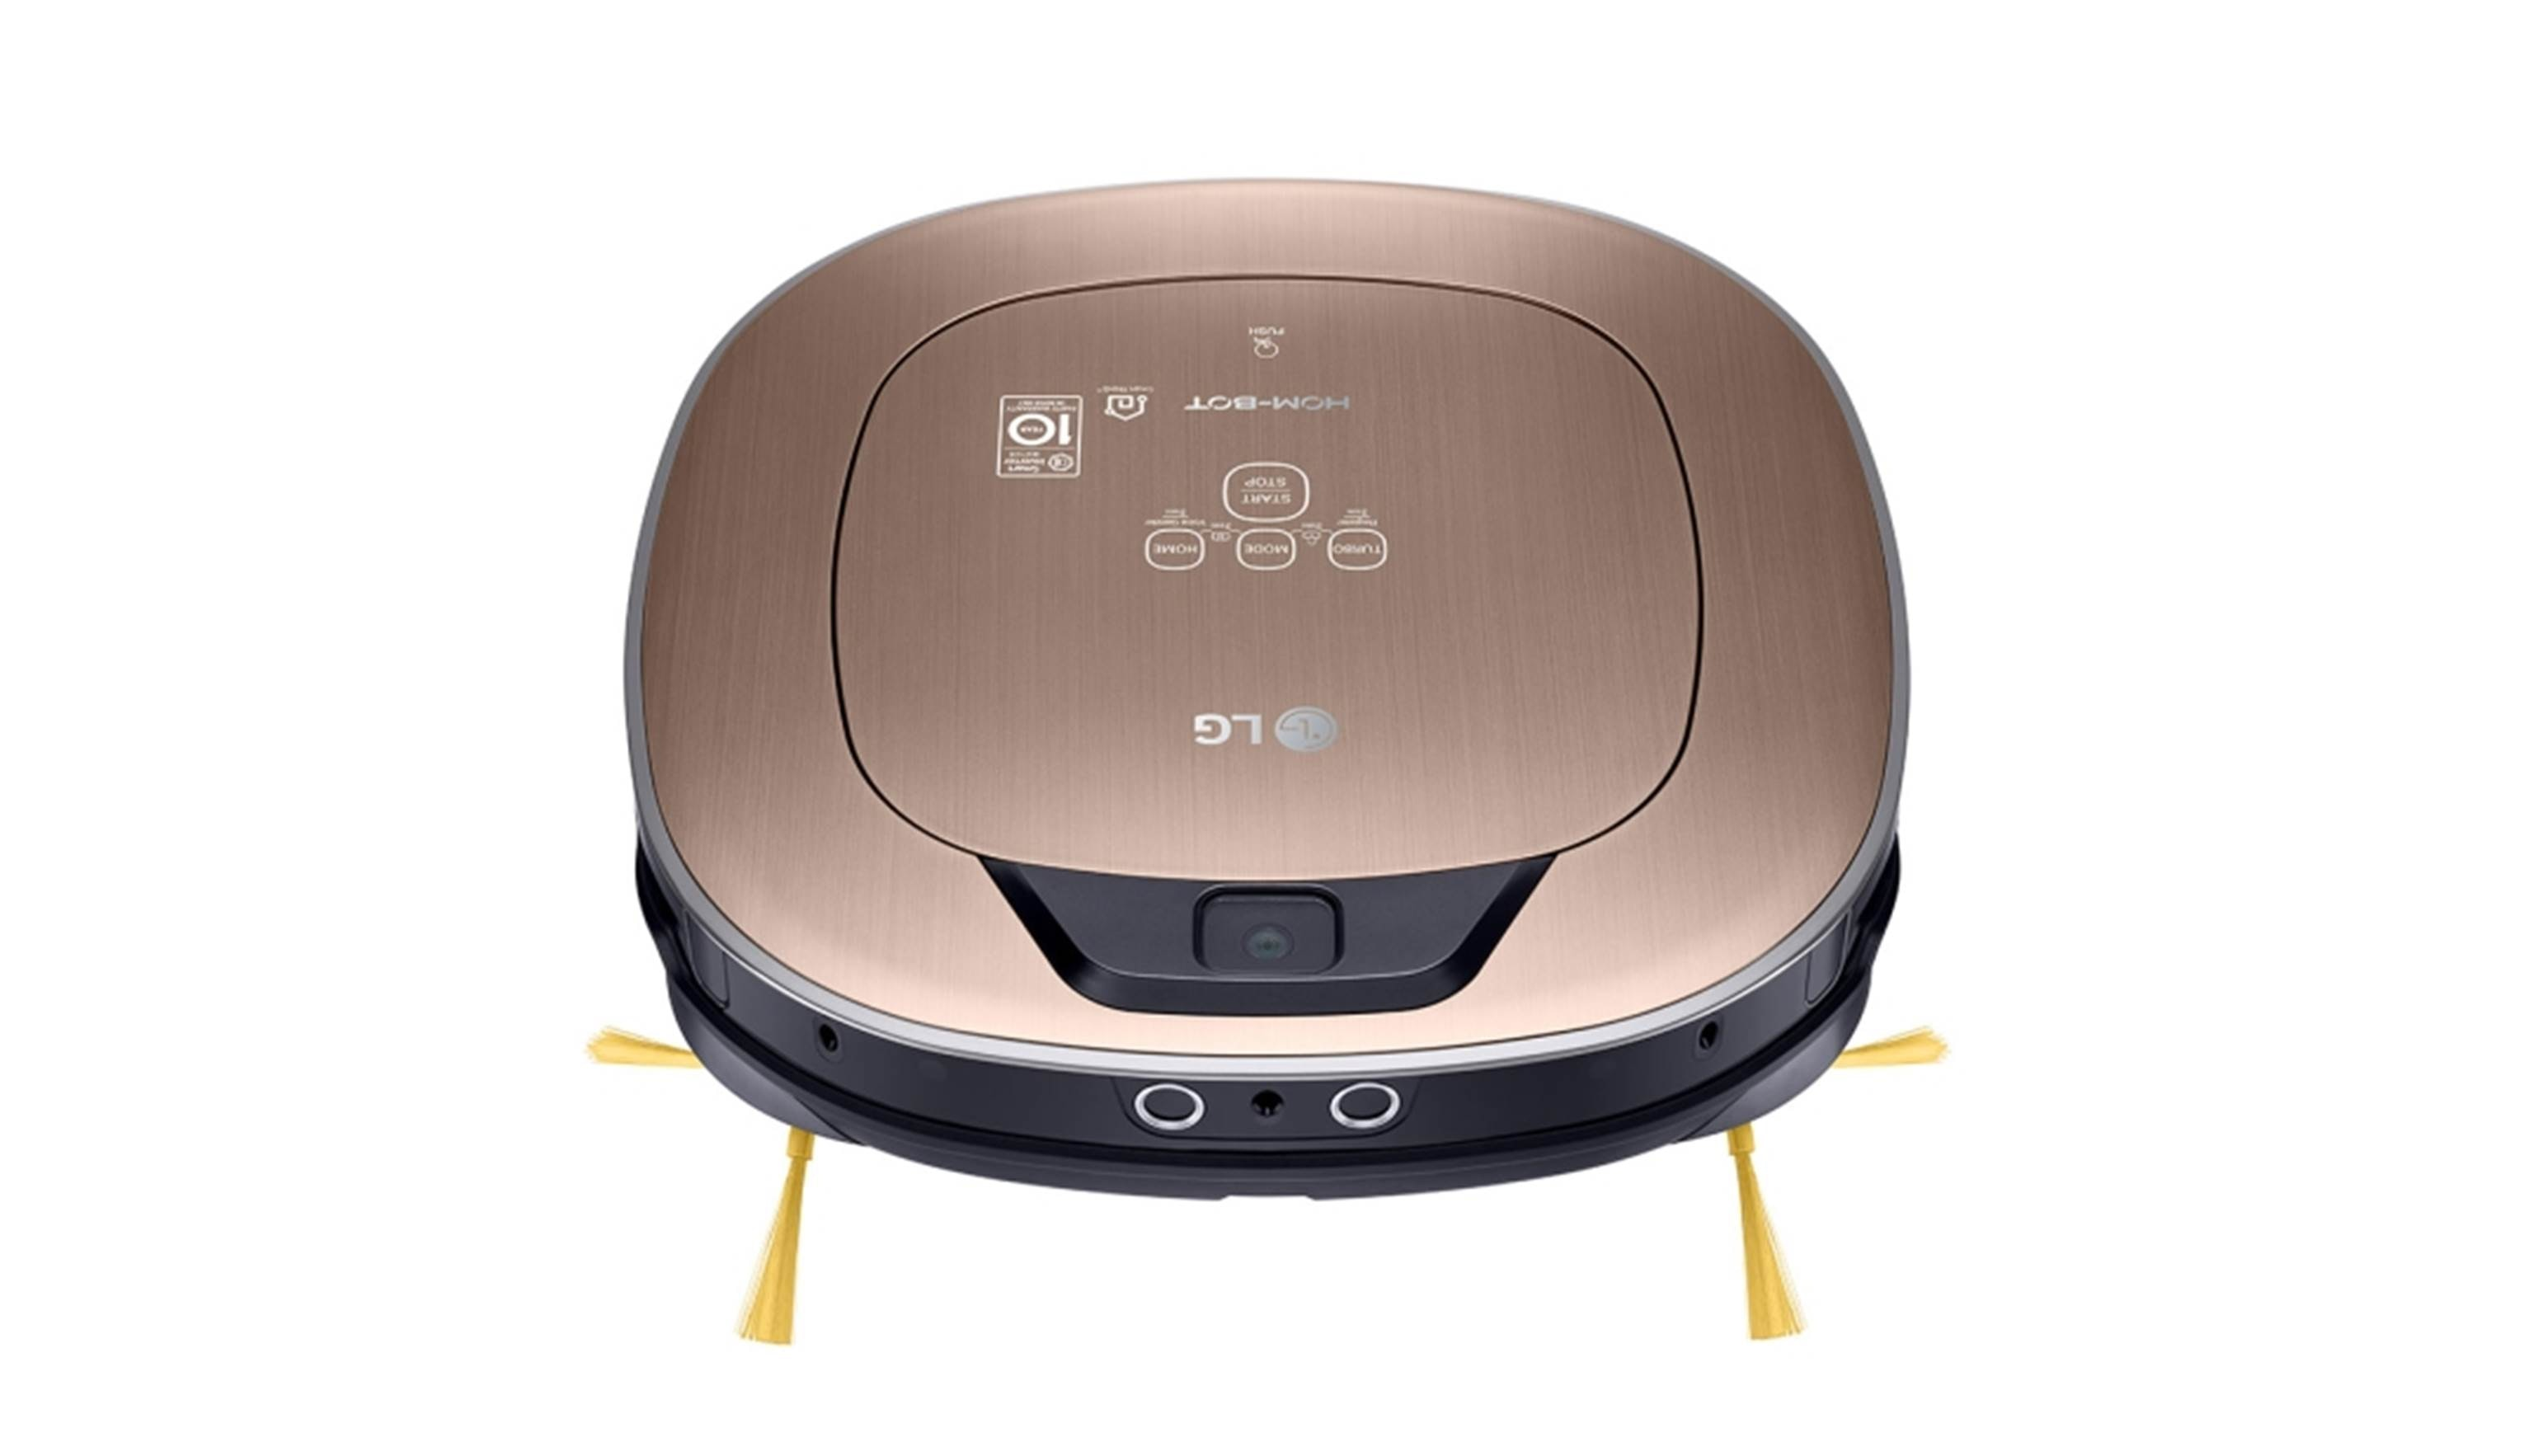 LG VR66820VMNC Network Robotic Vacuum Cleaner- Top Front View